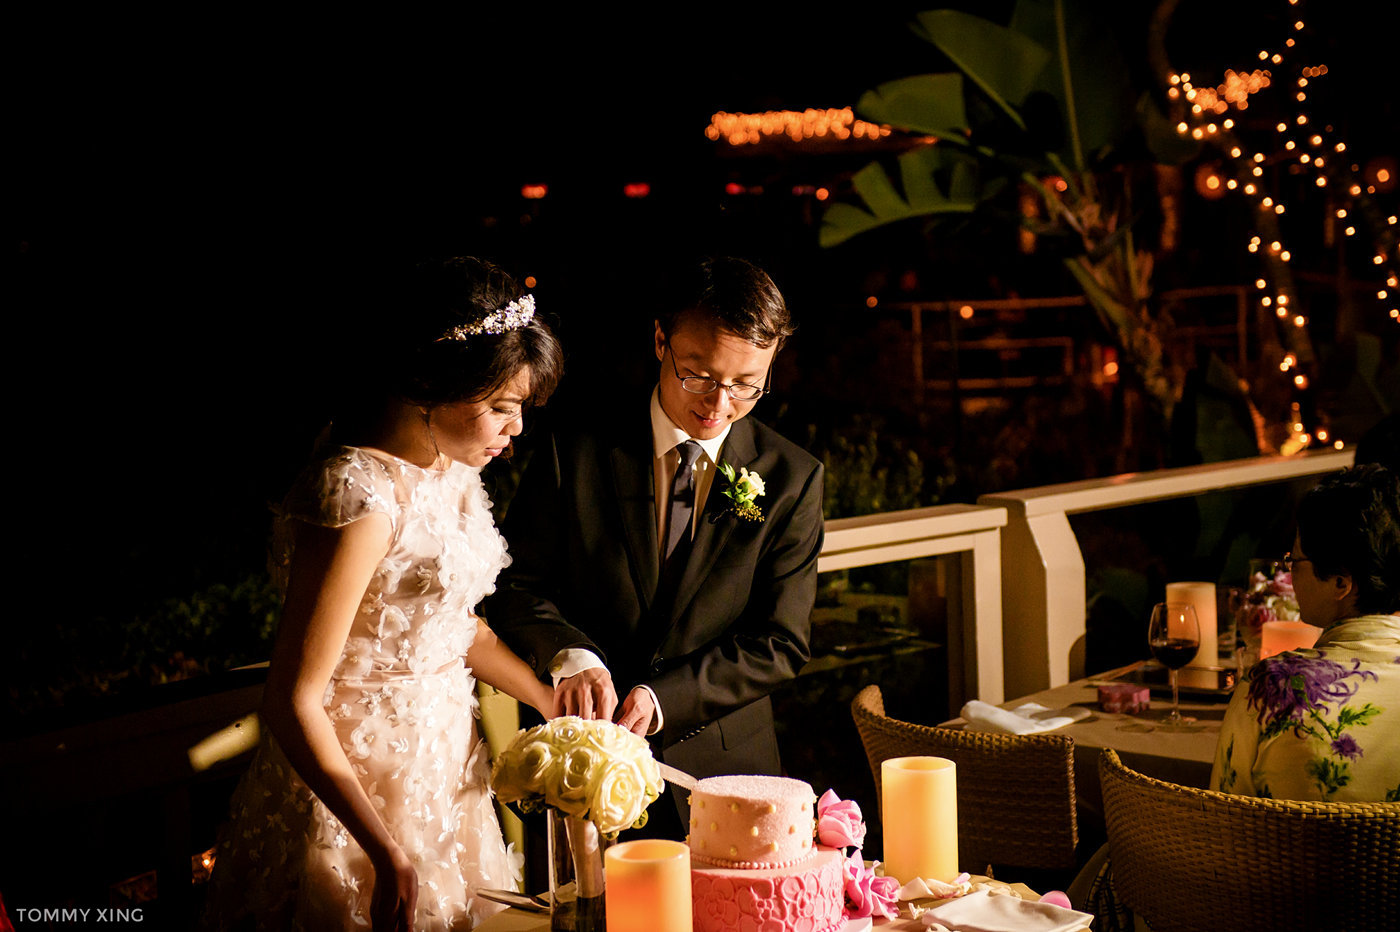 Qinglu Meng & Daozheng Chen Wedding Slideshow-221-E.JPG